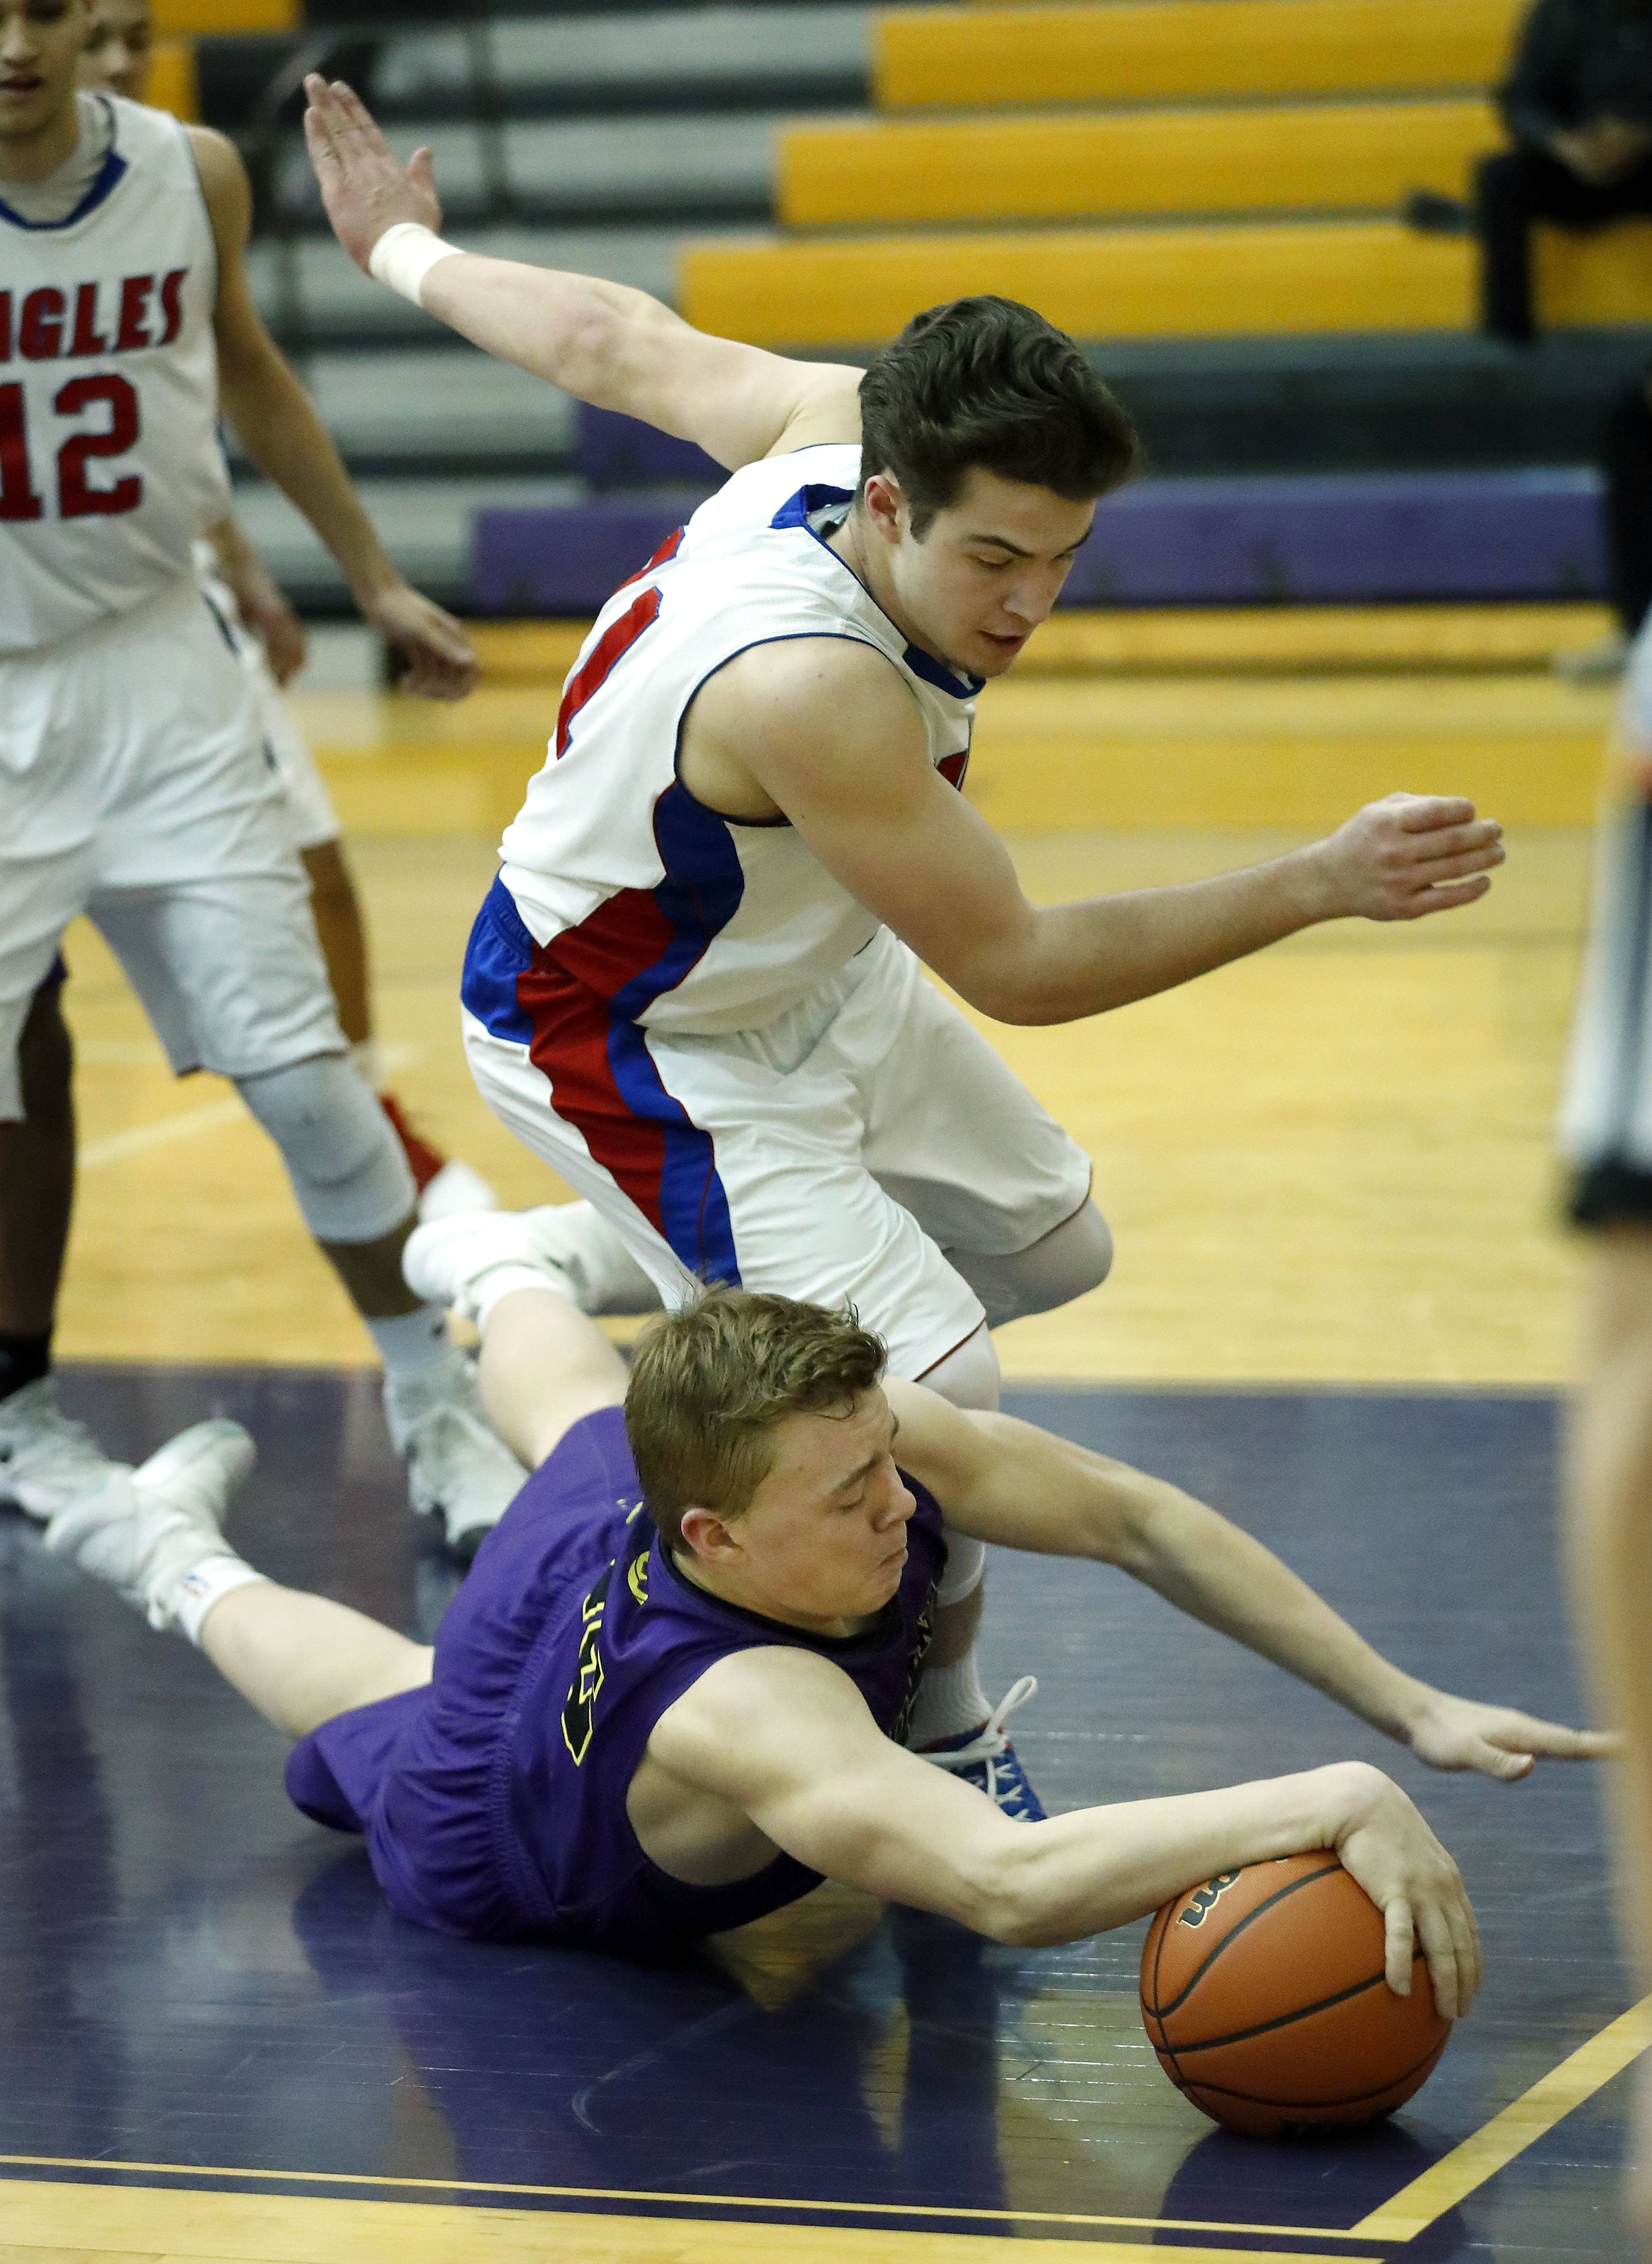 Wauconda's Andrew Nolan, bottom, and Lakes' Michael Behrendt scramble for a loose ball during Class 3A regional semifinal play Tuesday at Wauconda.